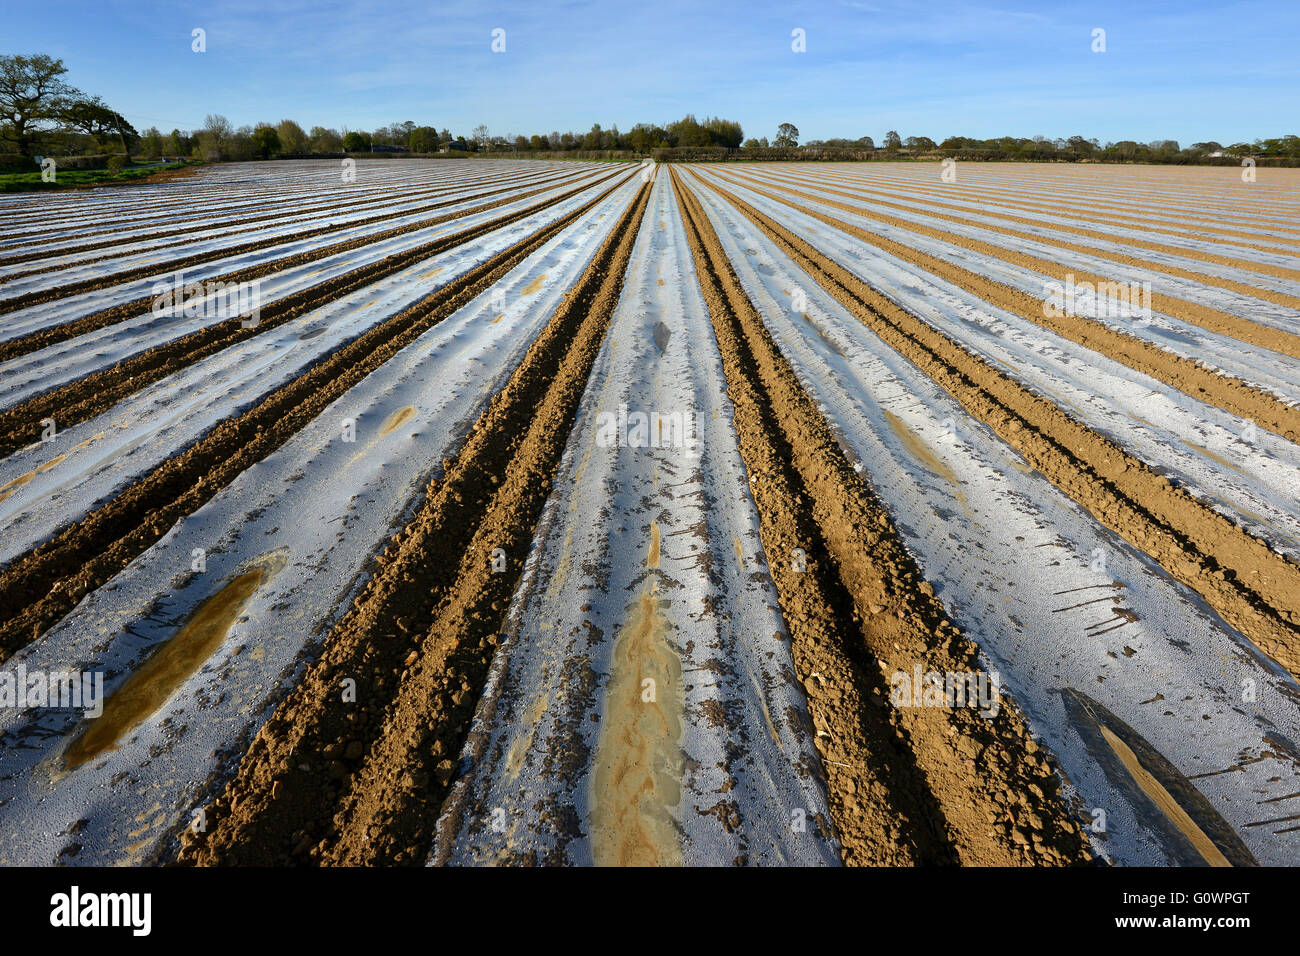 Plastic sheeting on maize field, East Sussex - Stock Image